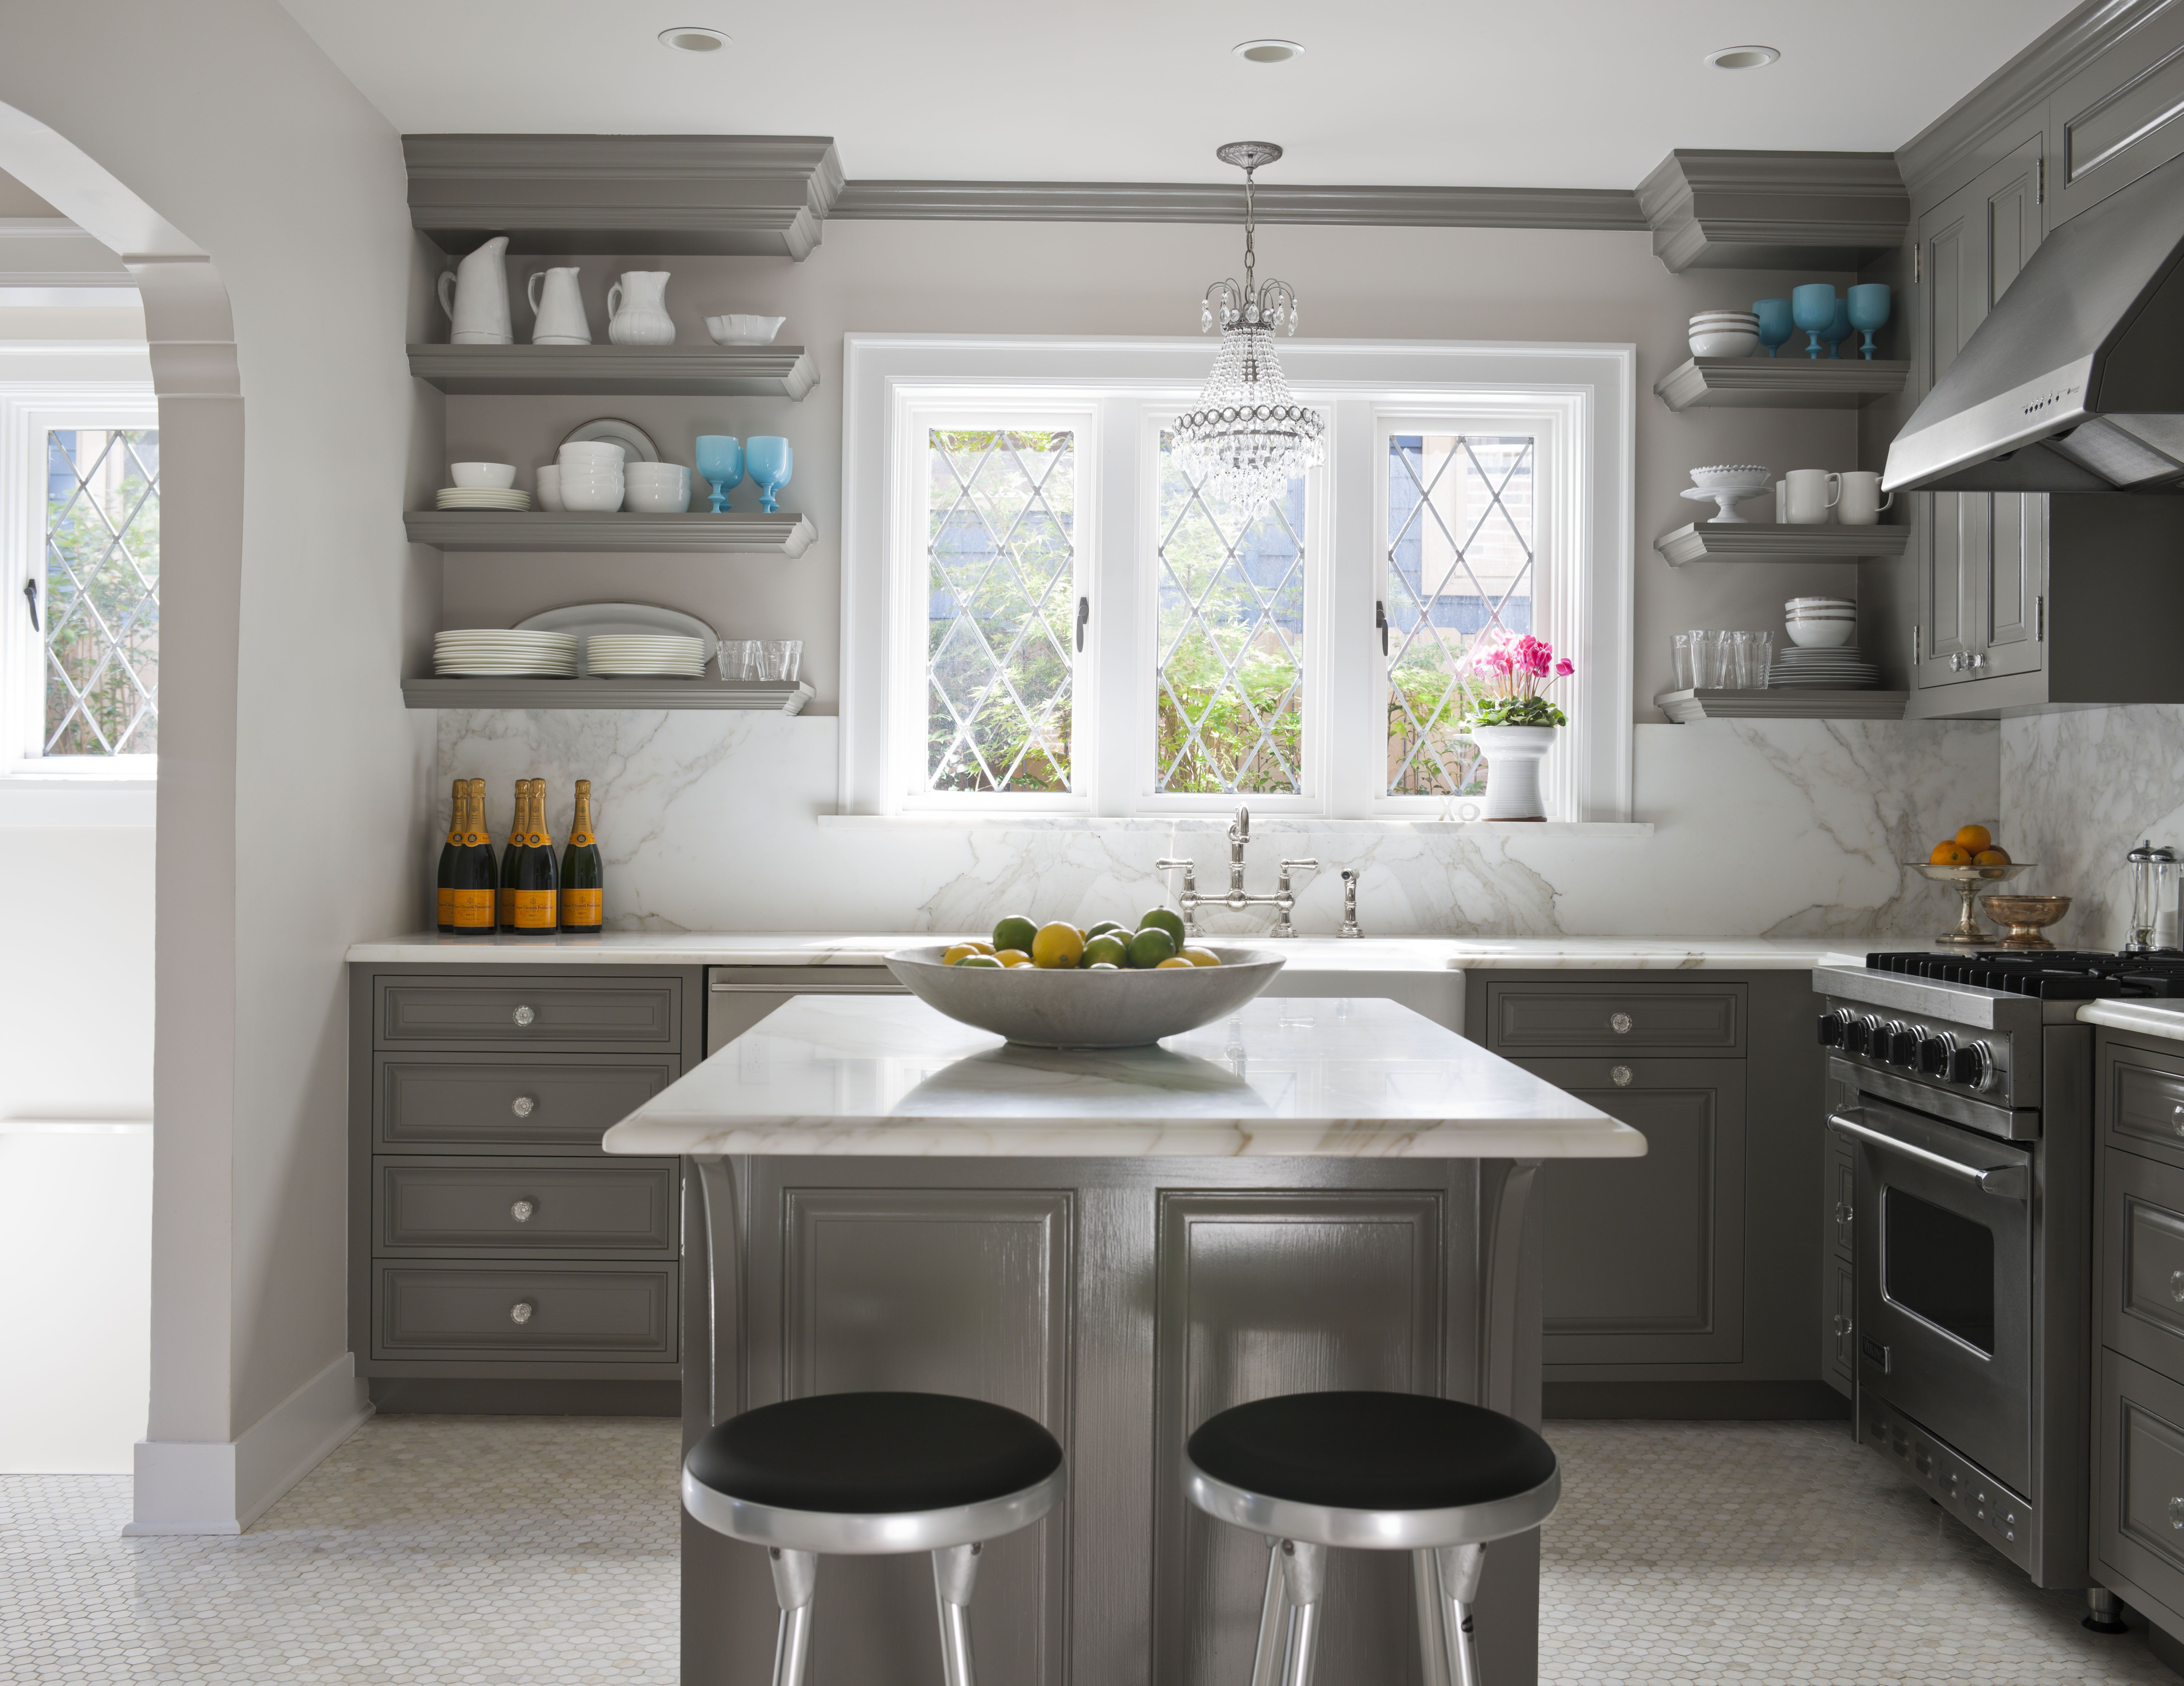 Maison Luxe featured in House Beautiful, April 2011 | Grey ...